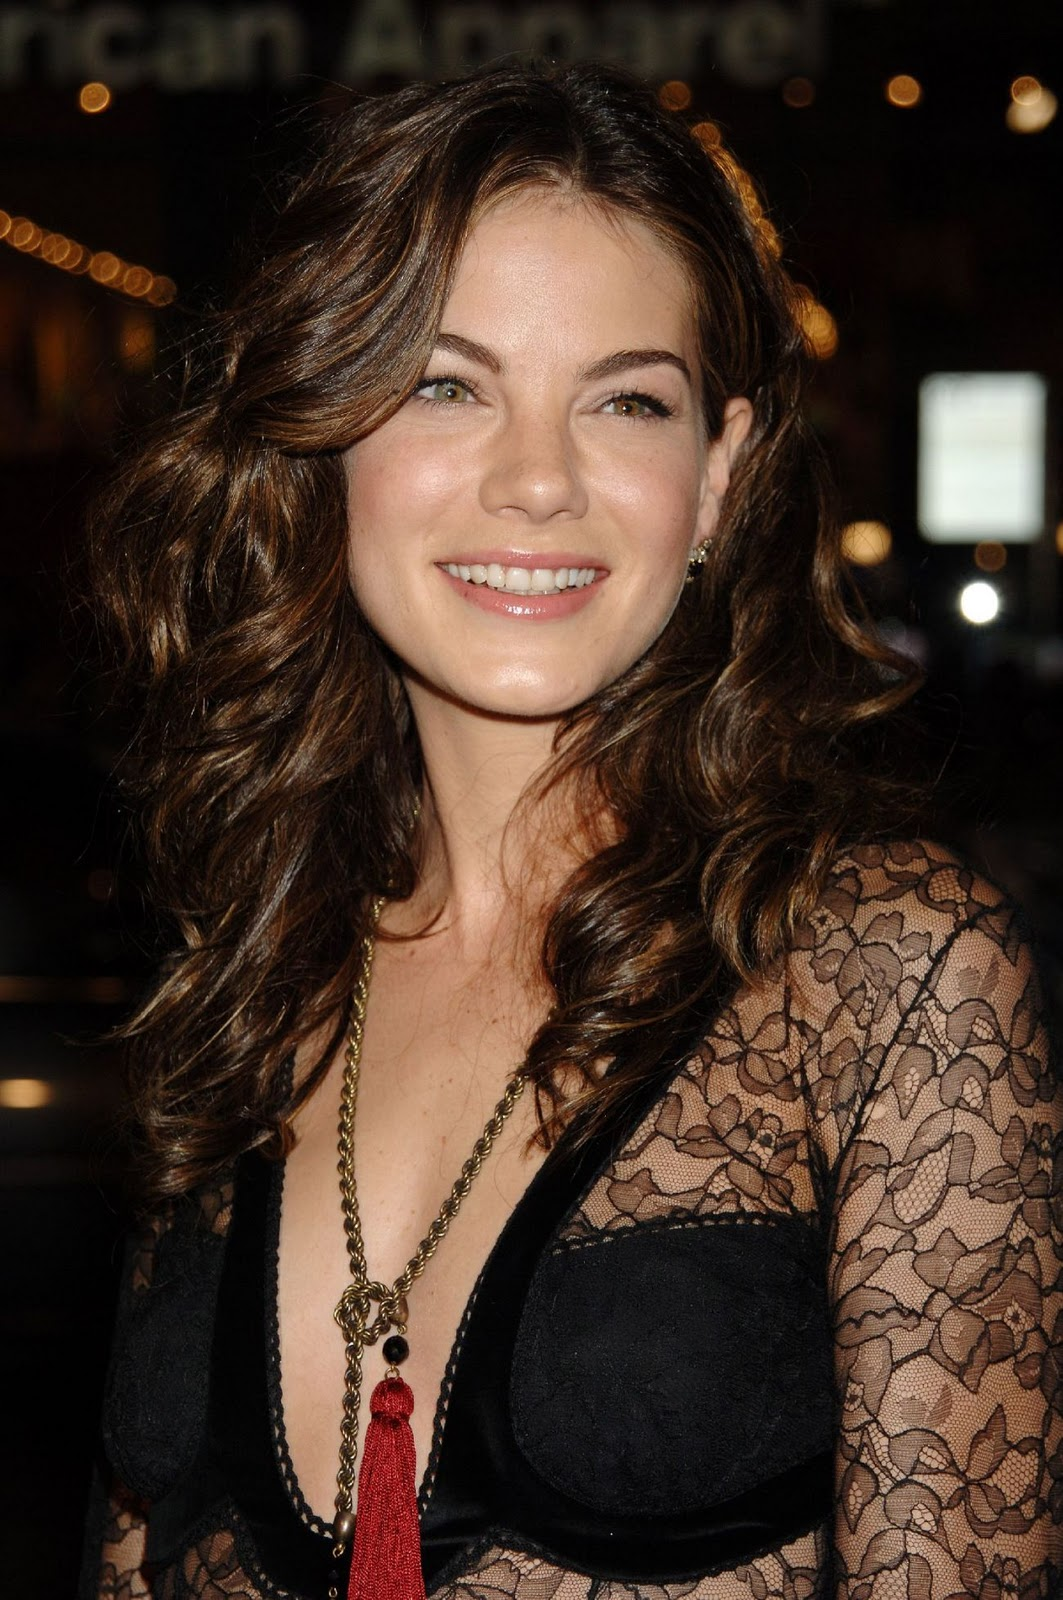 Cleavage Michelle Monaghan nude photos 2019